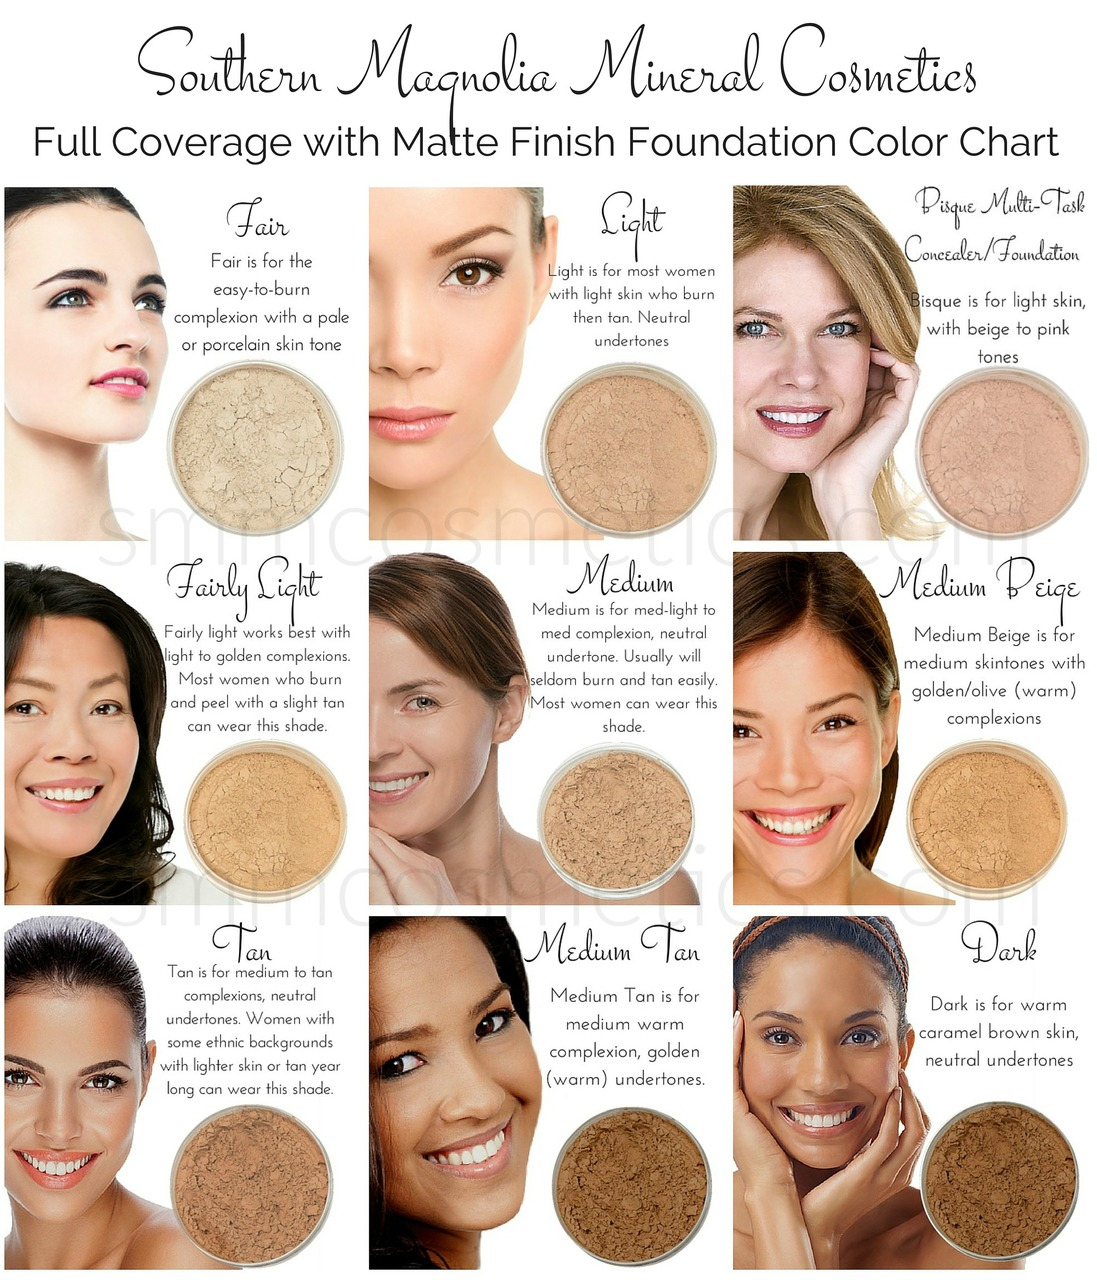 ... Purely You Natural 6 Piece Mineral Cosmetics Kit | Minimalist Makeup ...